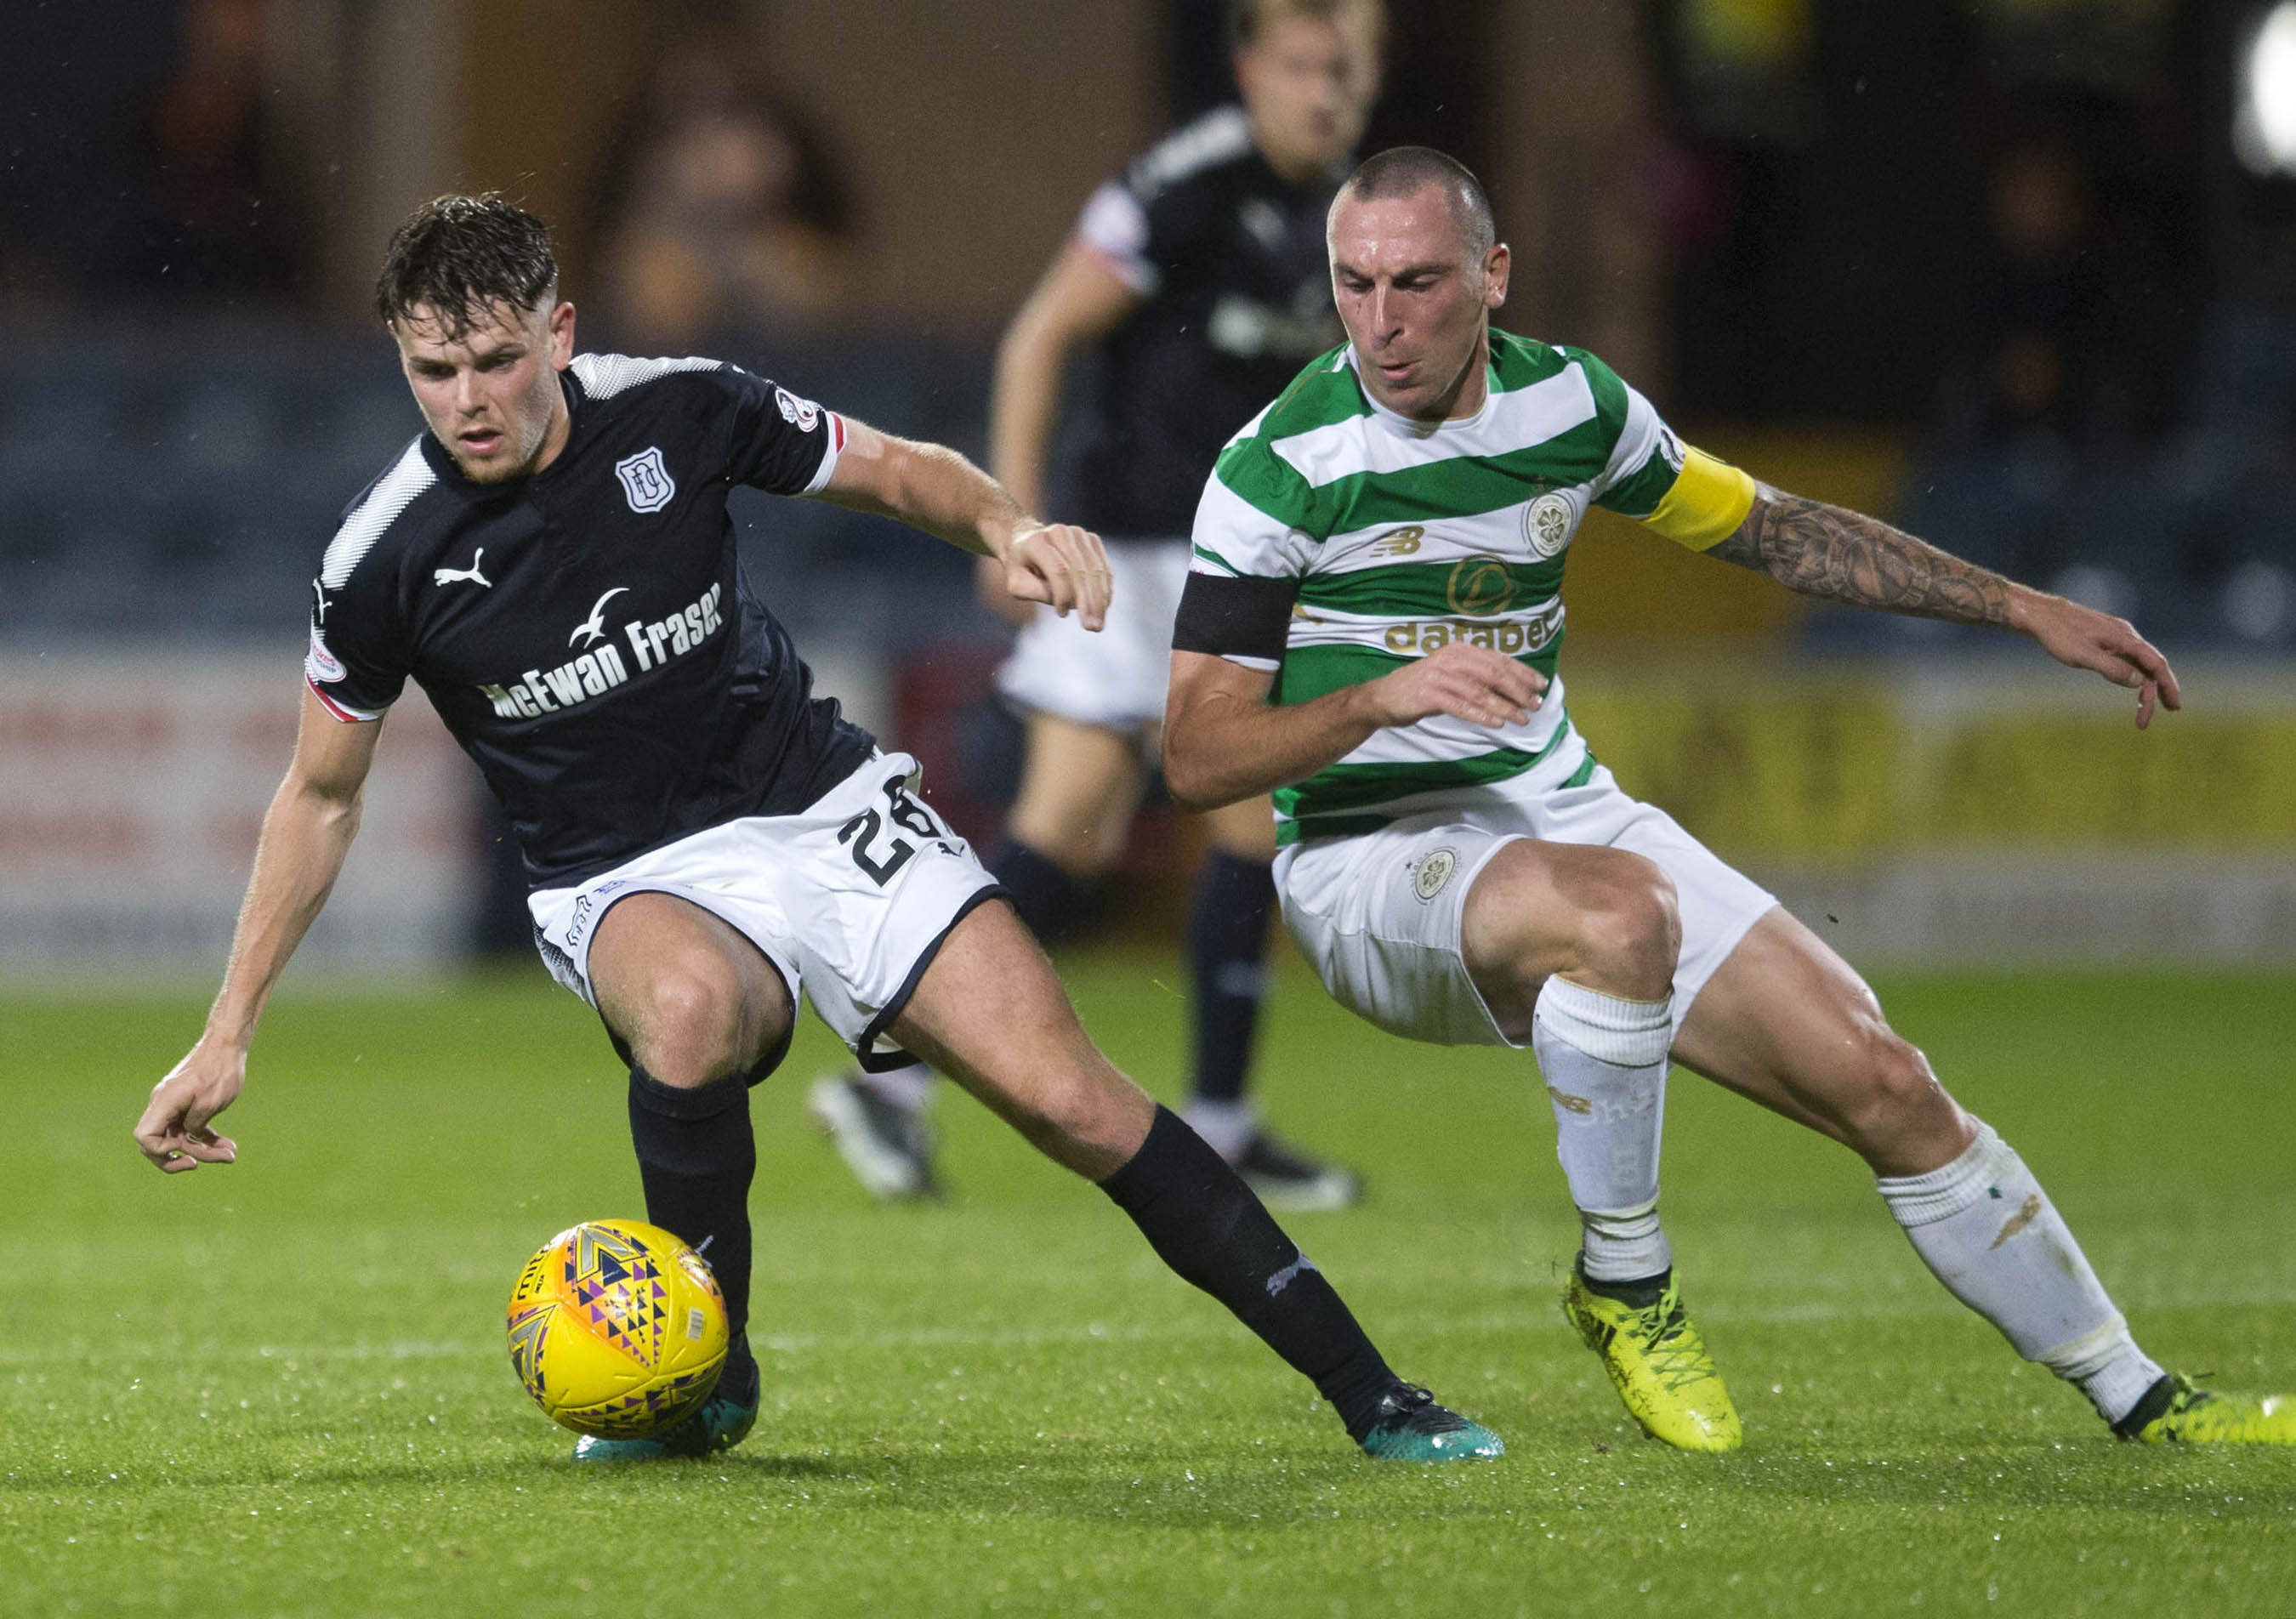 Dundee's Lewis Spence (left) and Celtic's Scott Brown (right) (Jeff Holmes/PA Wire)